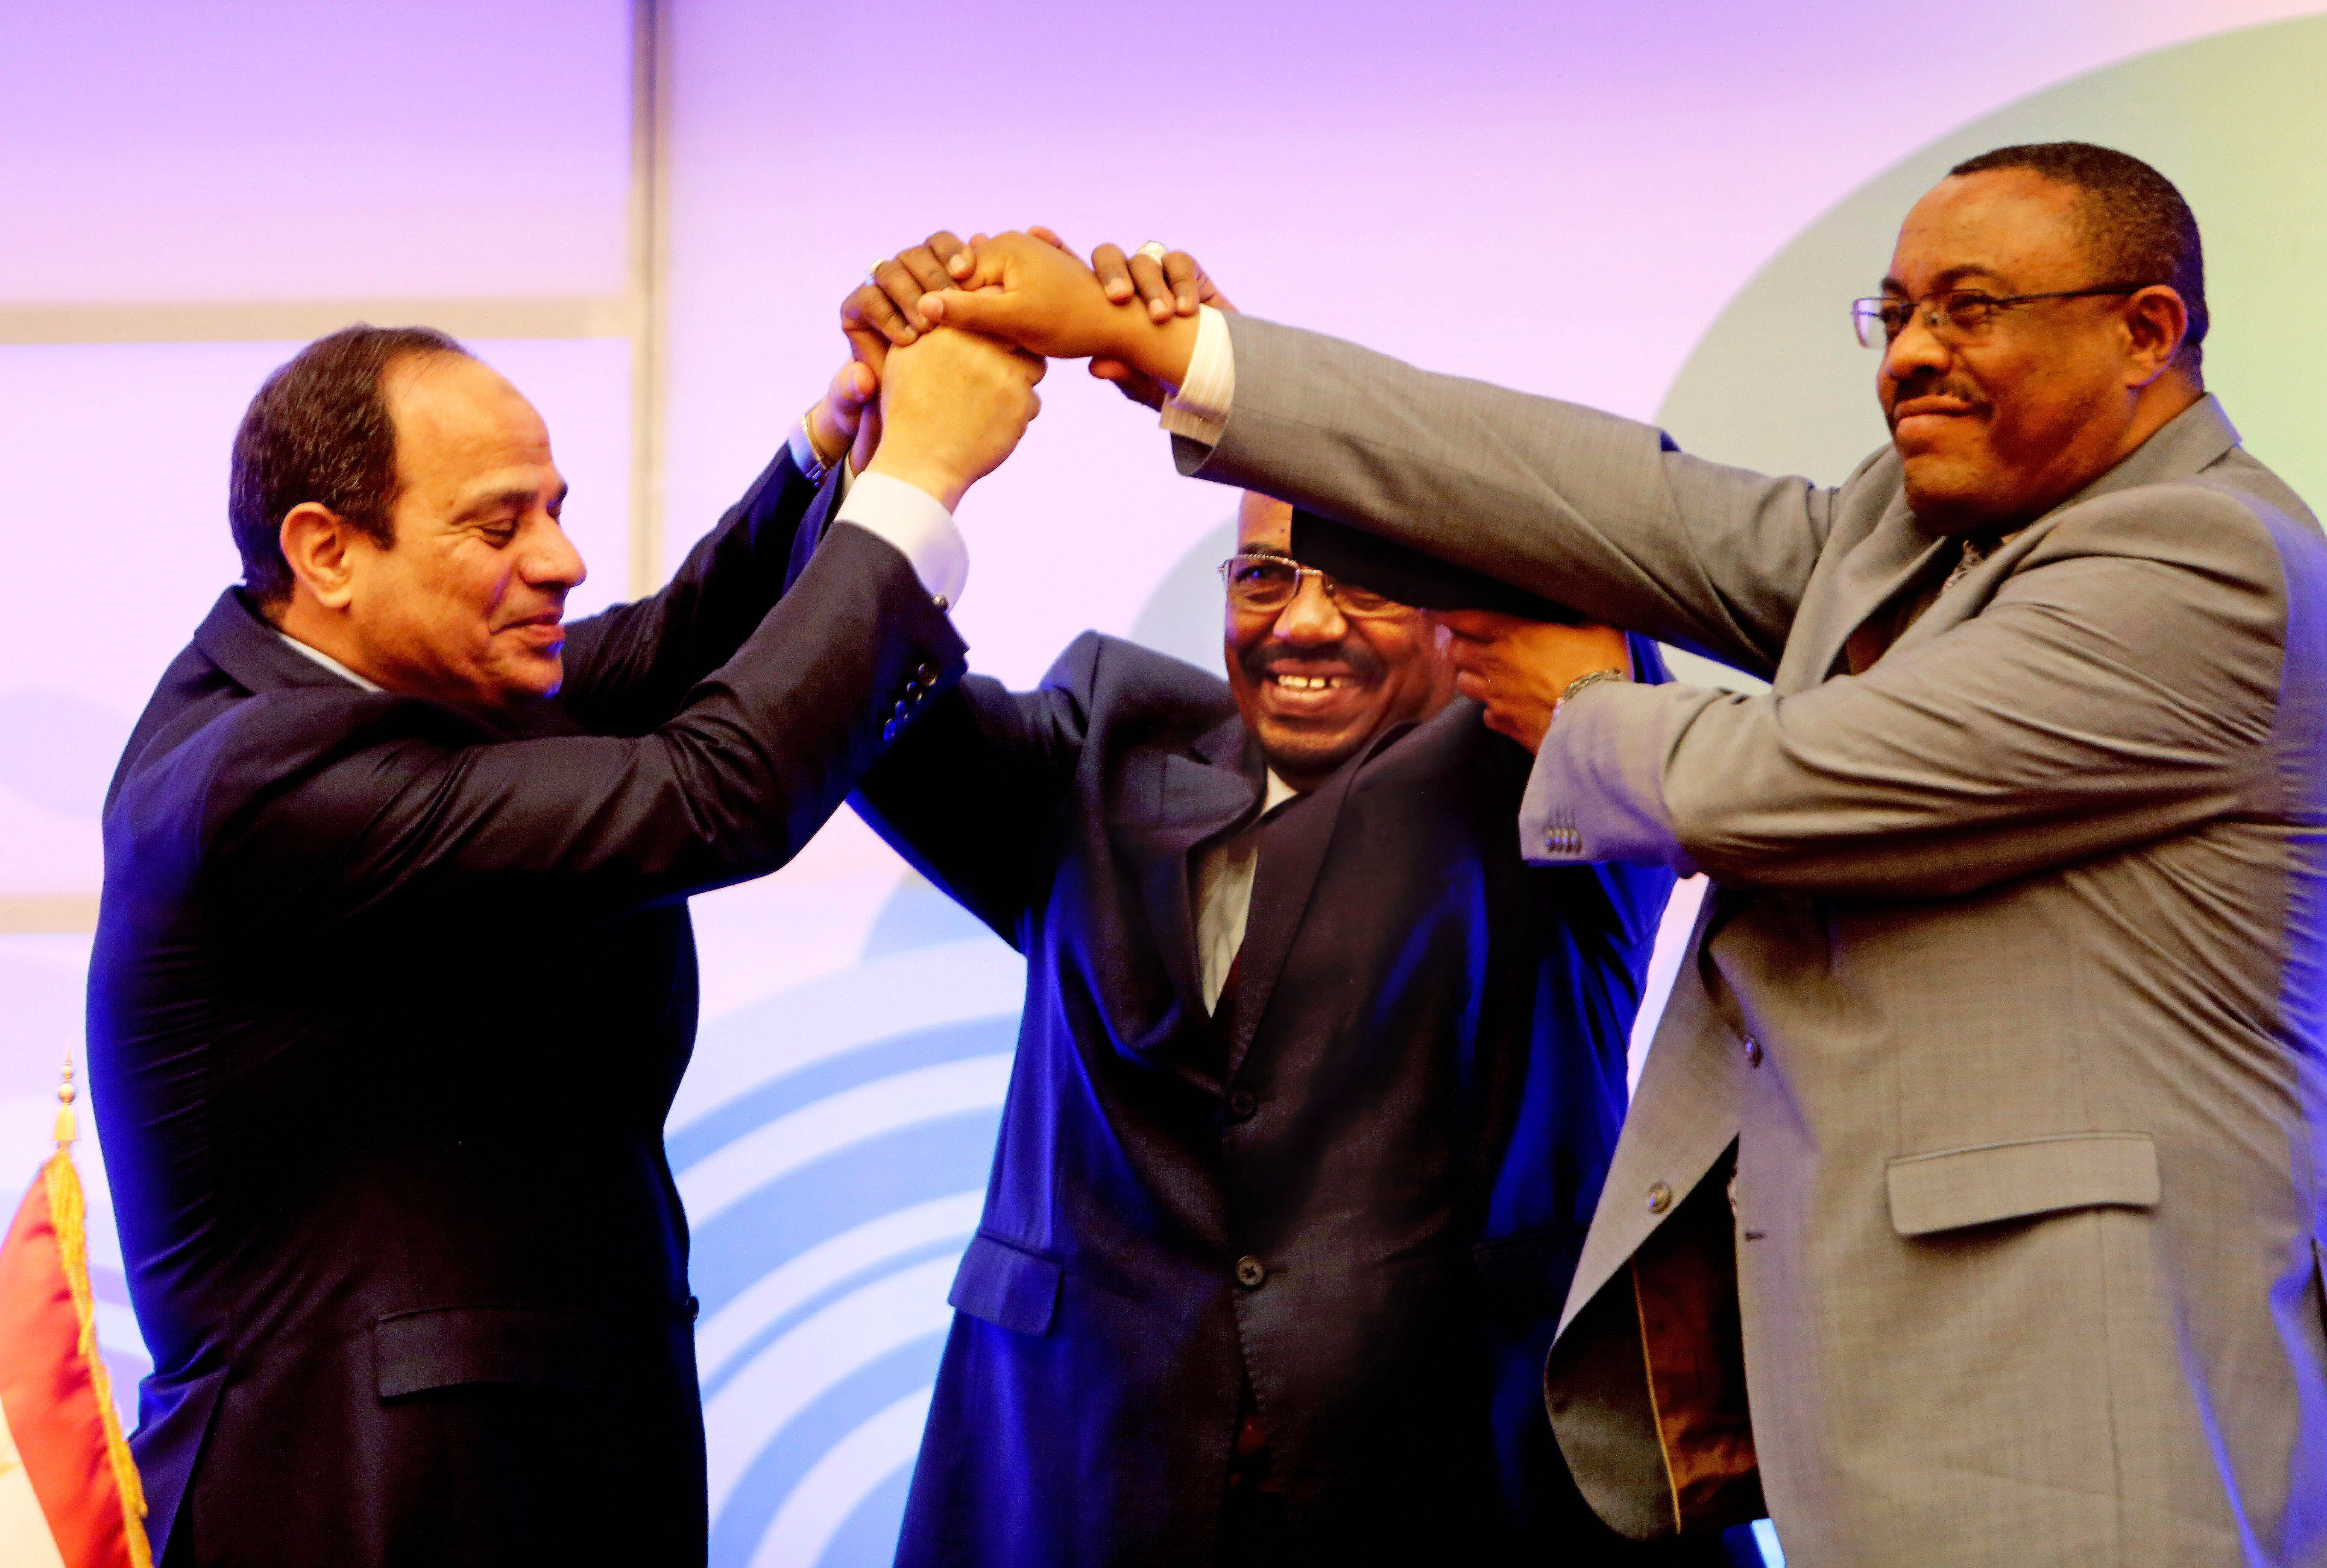 Sudanese President Omar al-Bashir, center, Egyptian President Abdel-Fattah el-Sissi, left, and Ethiopian Prime Minister Hailemariam Desalegn, right, hold hands after signing an agreement on sharing water from the Nile River, in Khartoum, Sudan, Monday, March 23, 2015. Egypt, Ethiopia and Sudan on Monday signed an initial agreement on sharing water from the Nile River that runs through the three countries, as Ethiopia constructs a massive new dam it hopes will help alleviate its electricity shortages. El-Sissi, al-Bashir and Desalegn welcomed the agreement in speeches in Khartoum's Republican Palace on Monday. (AP Photo/Abd Raouf)